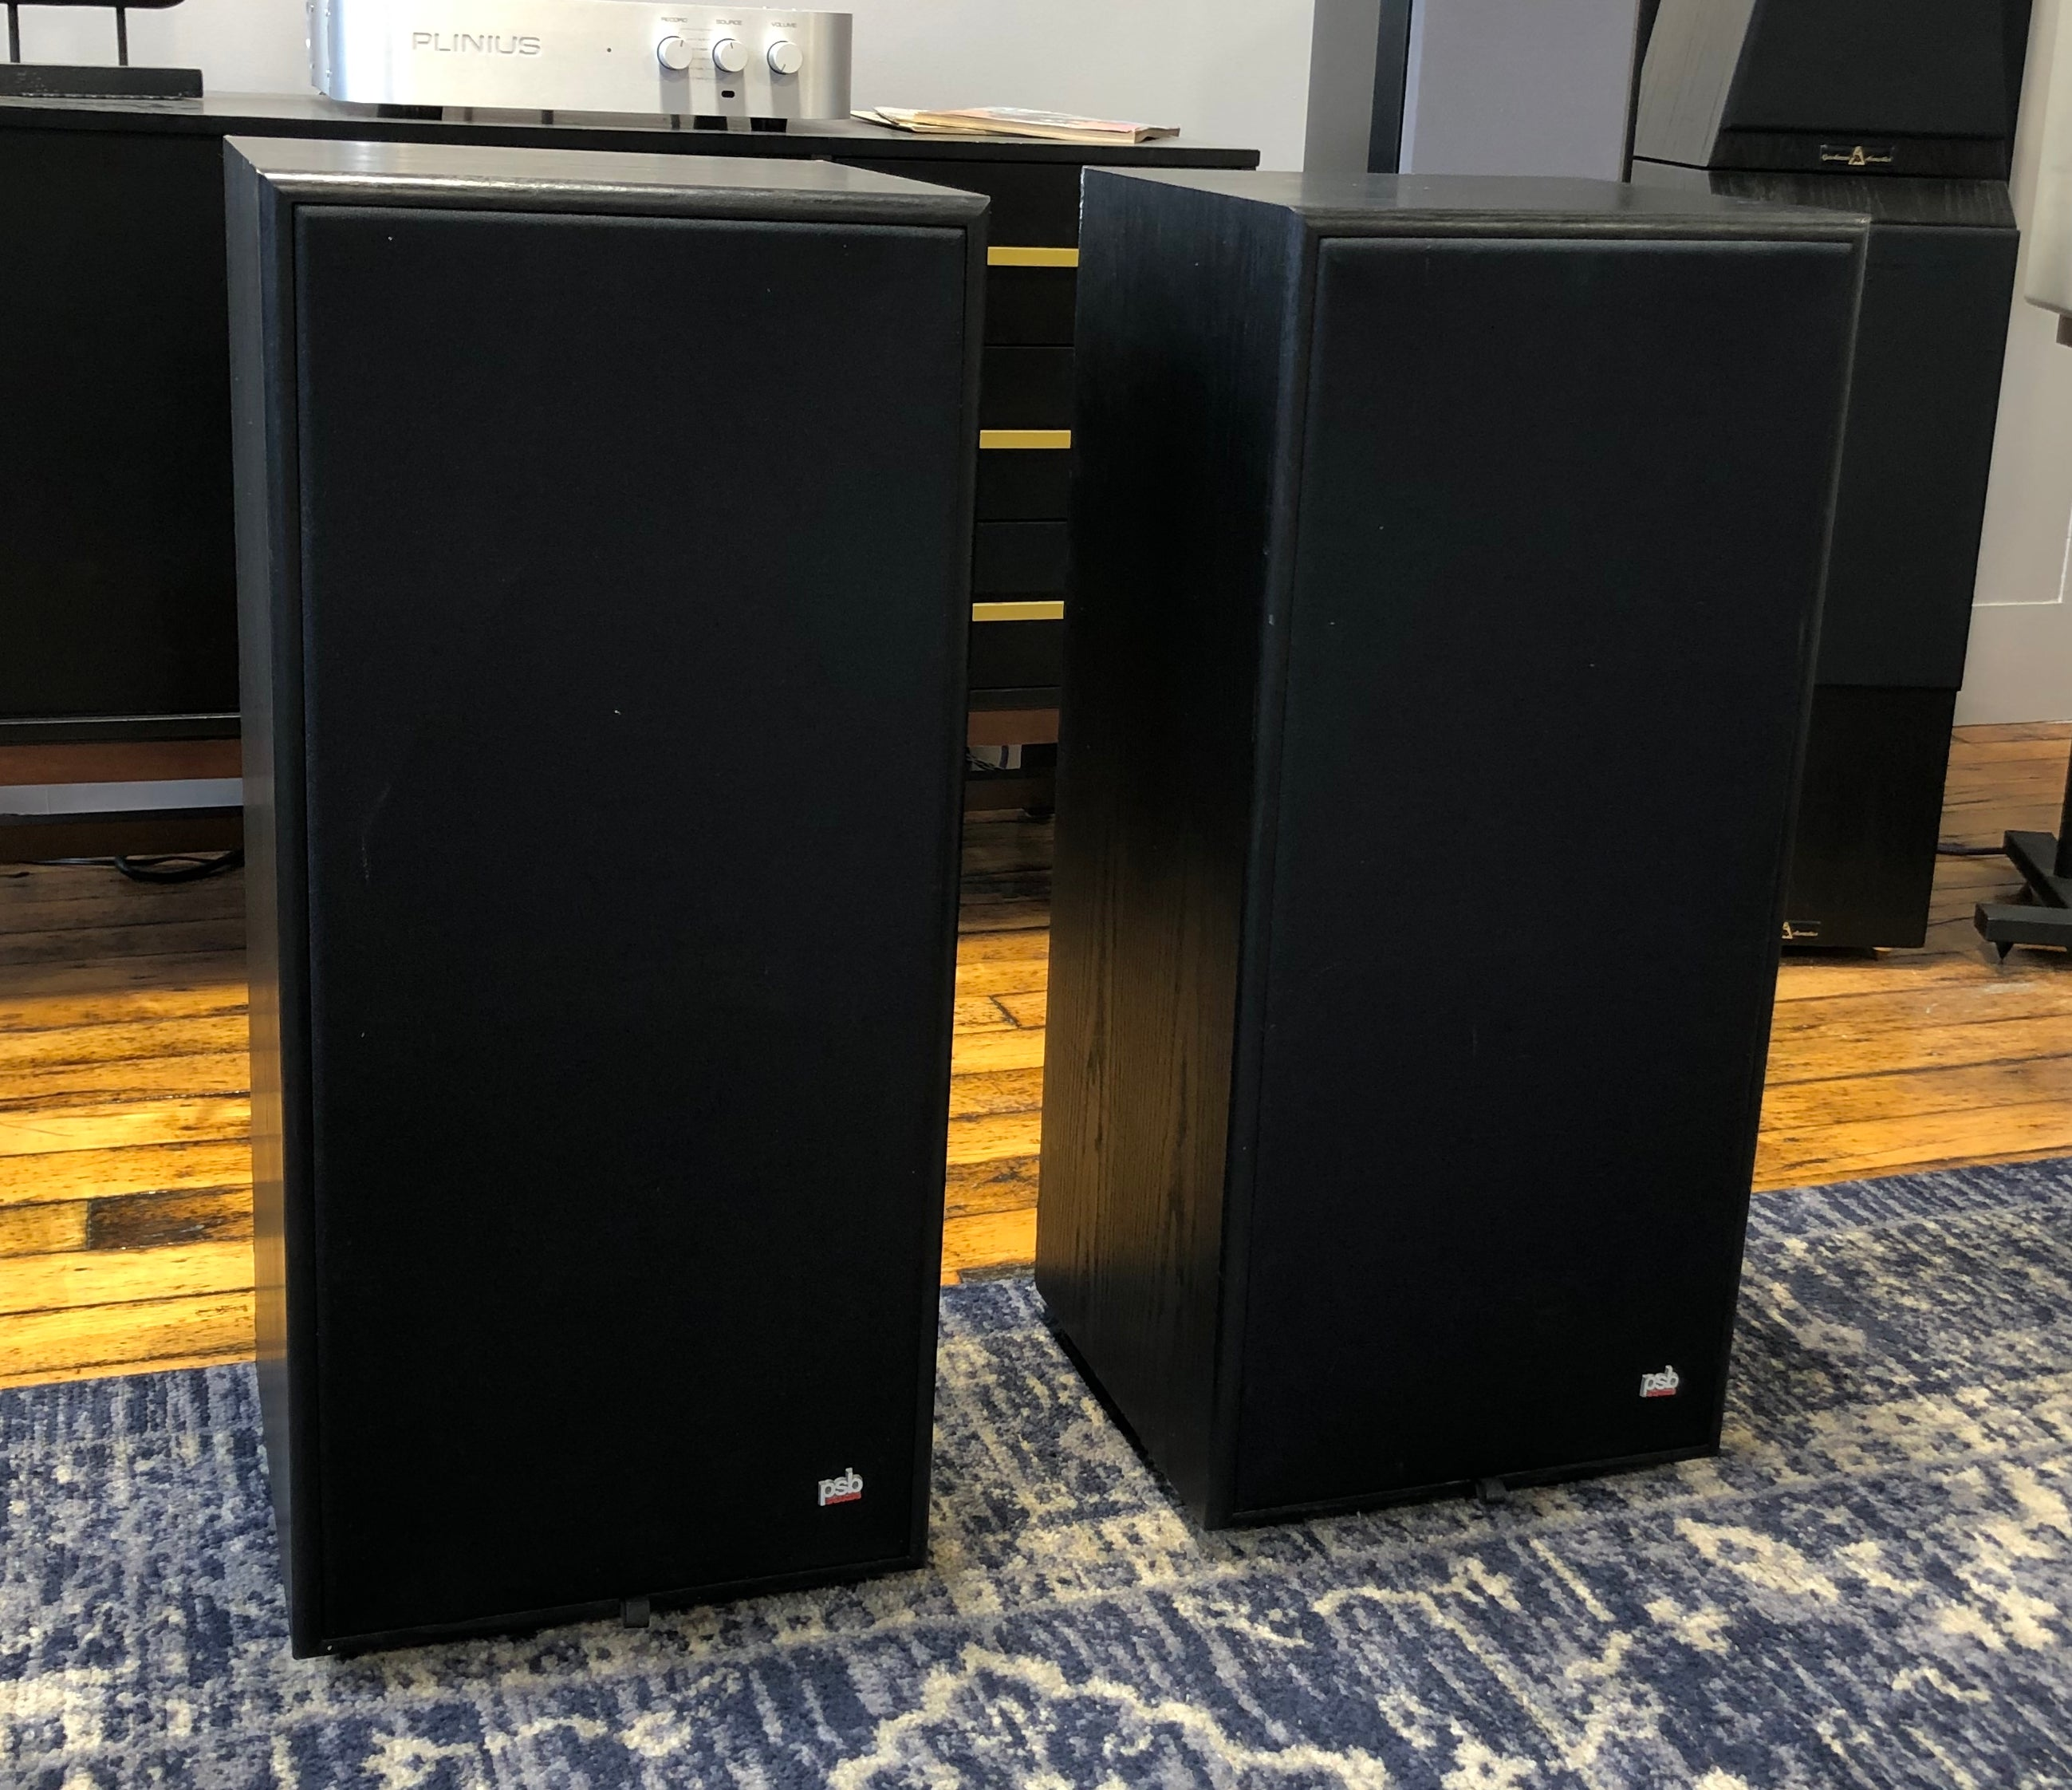 SOLD: PSB 70R Vintage Loudspeakers, Top of the Line 1980s Sound